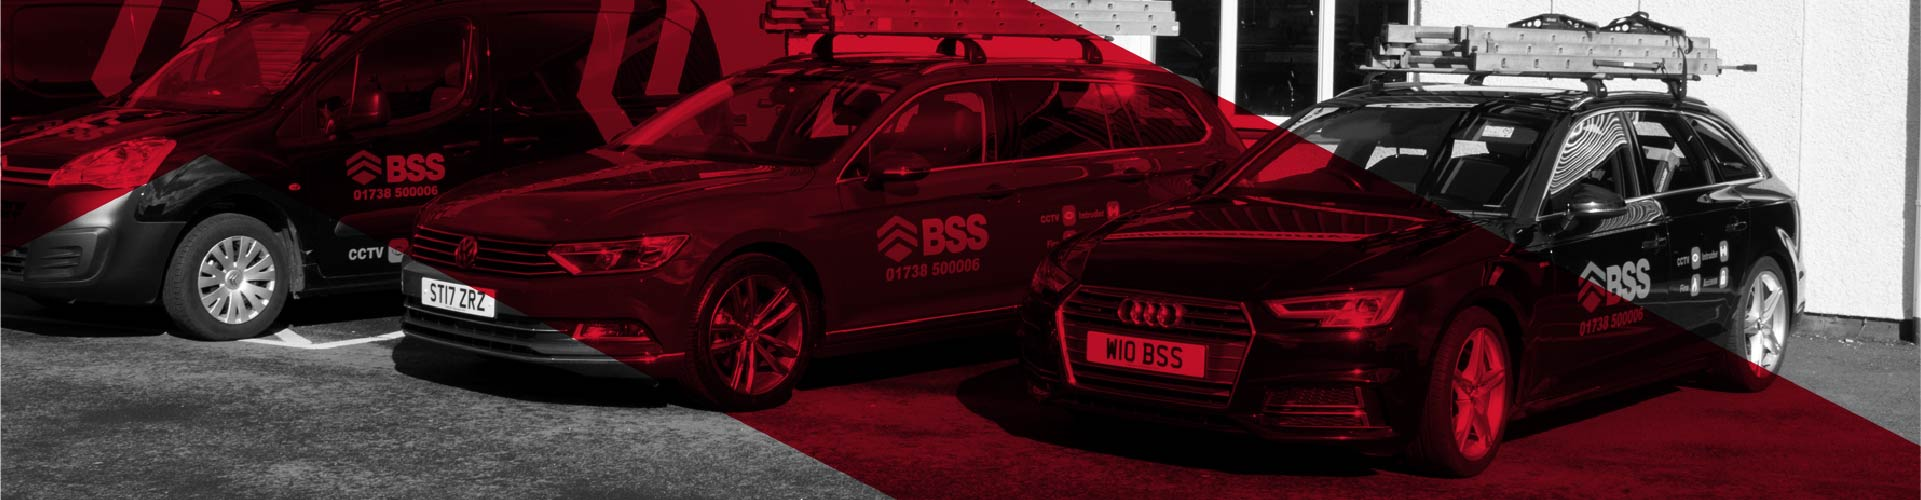 Bonthrone Security Services news banner showing an Audi branded company car